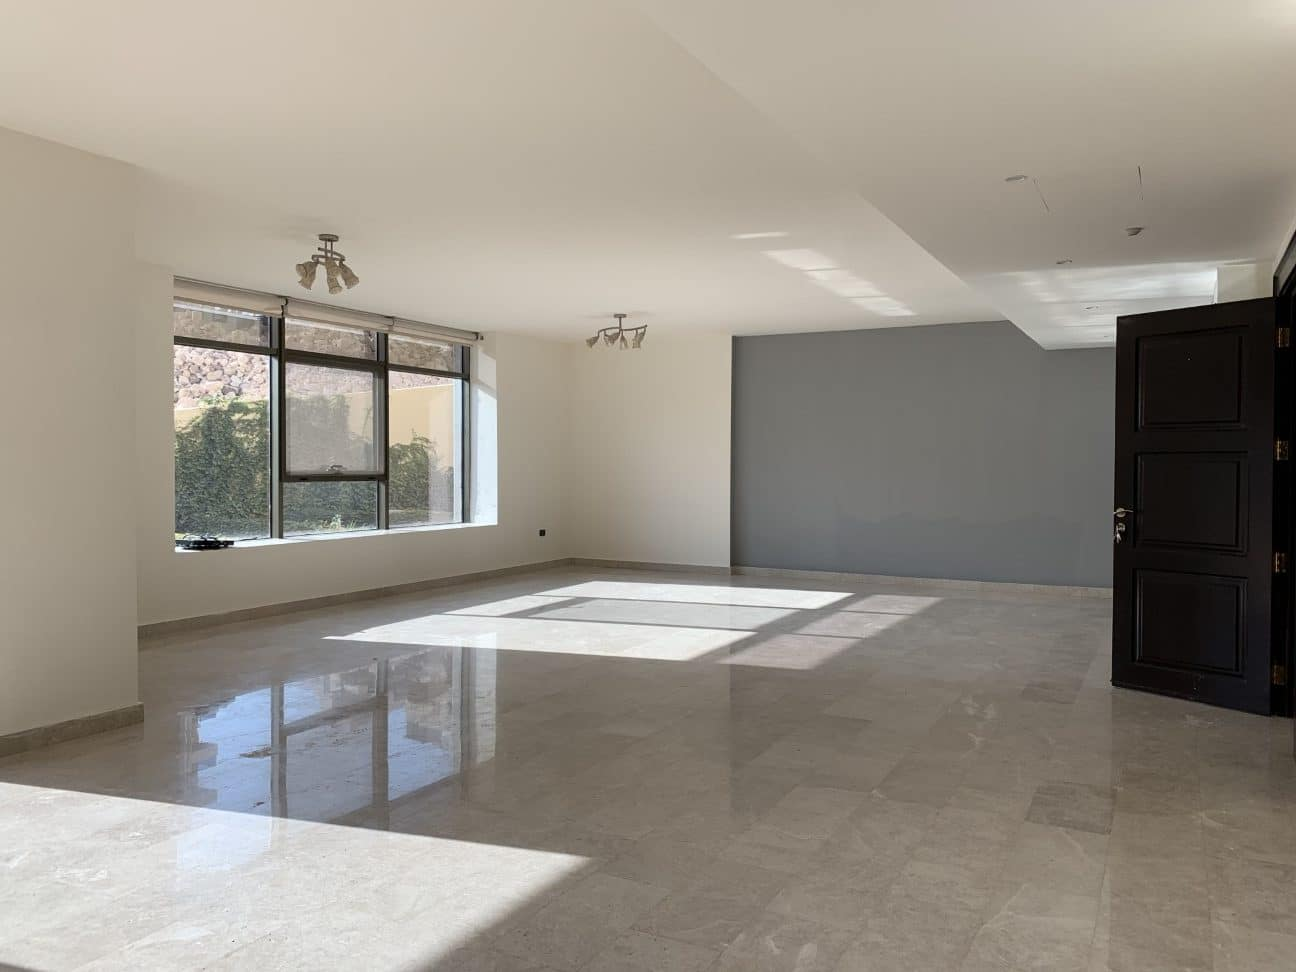 Unfurnished Apartment for Rent in Deir Ghbar